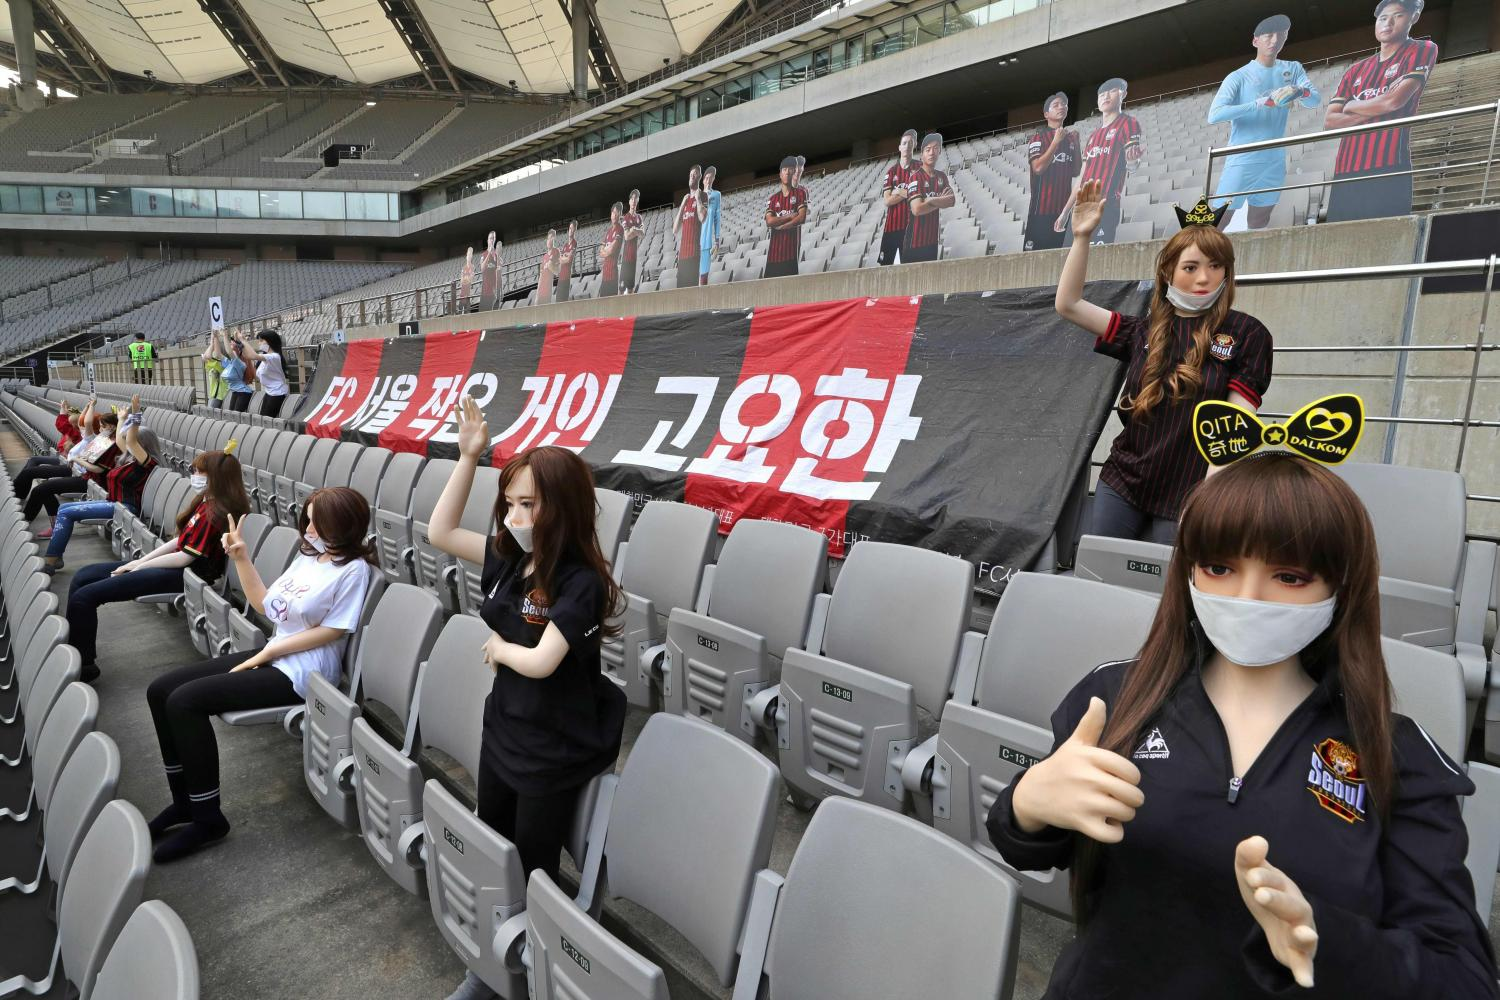 Mannequins in the stands at FC Seoul's stadium last Sunday. (AFP photo)